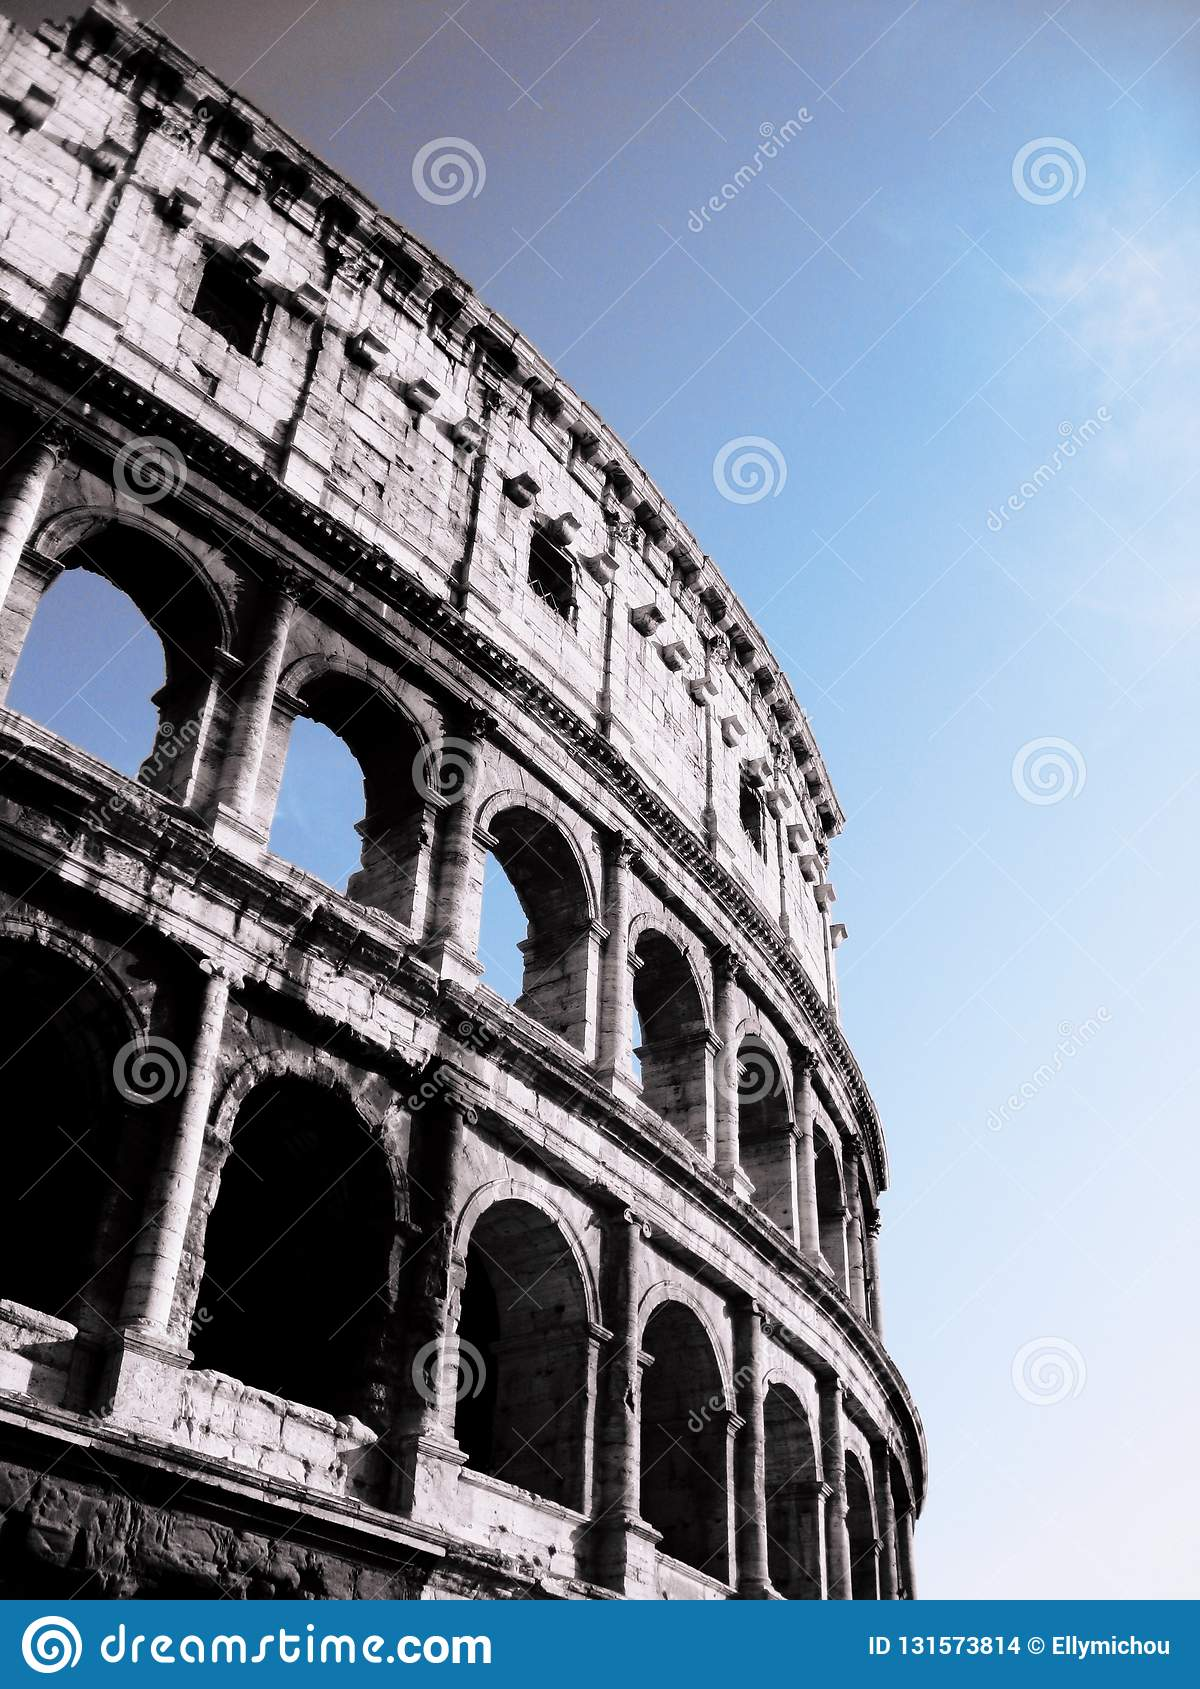 Low angle view of the Colosseum, Rome.